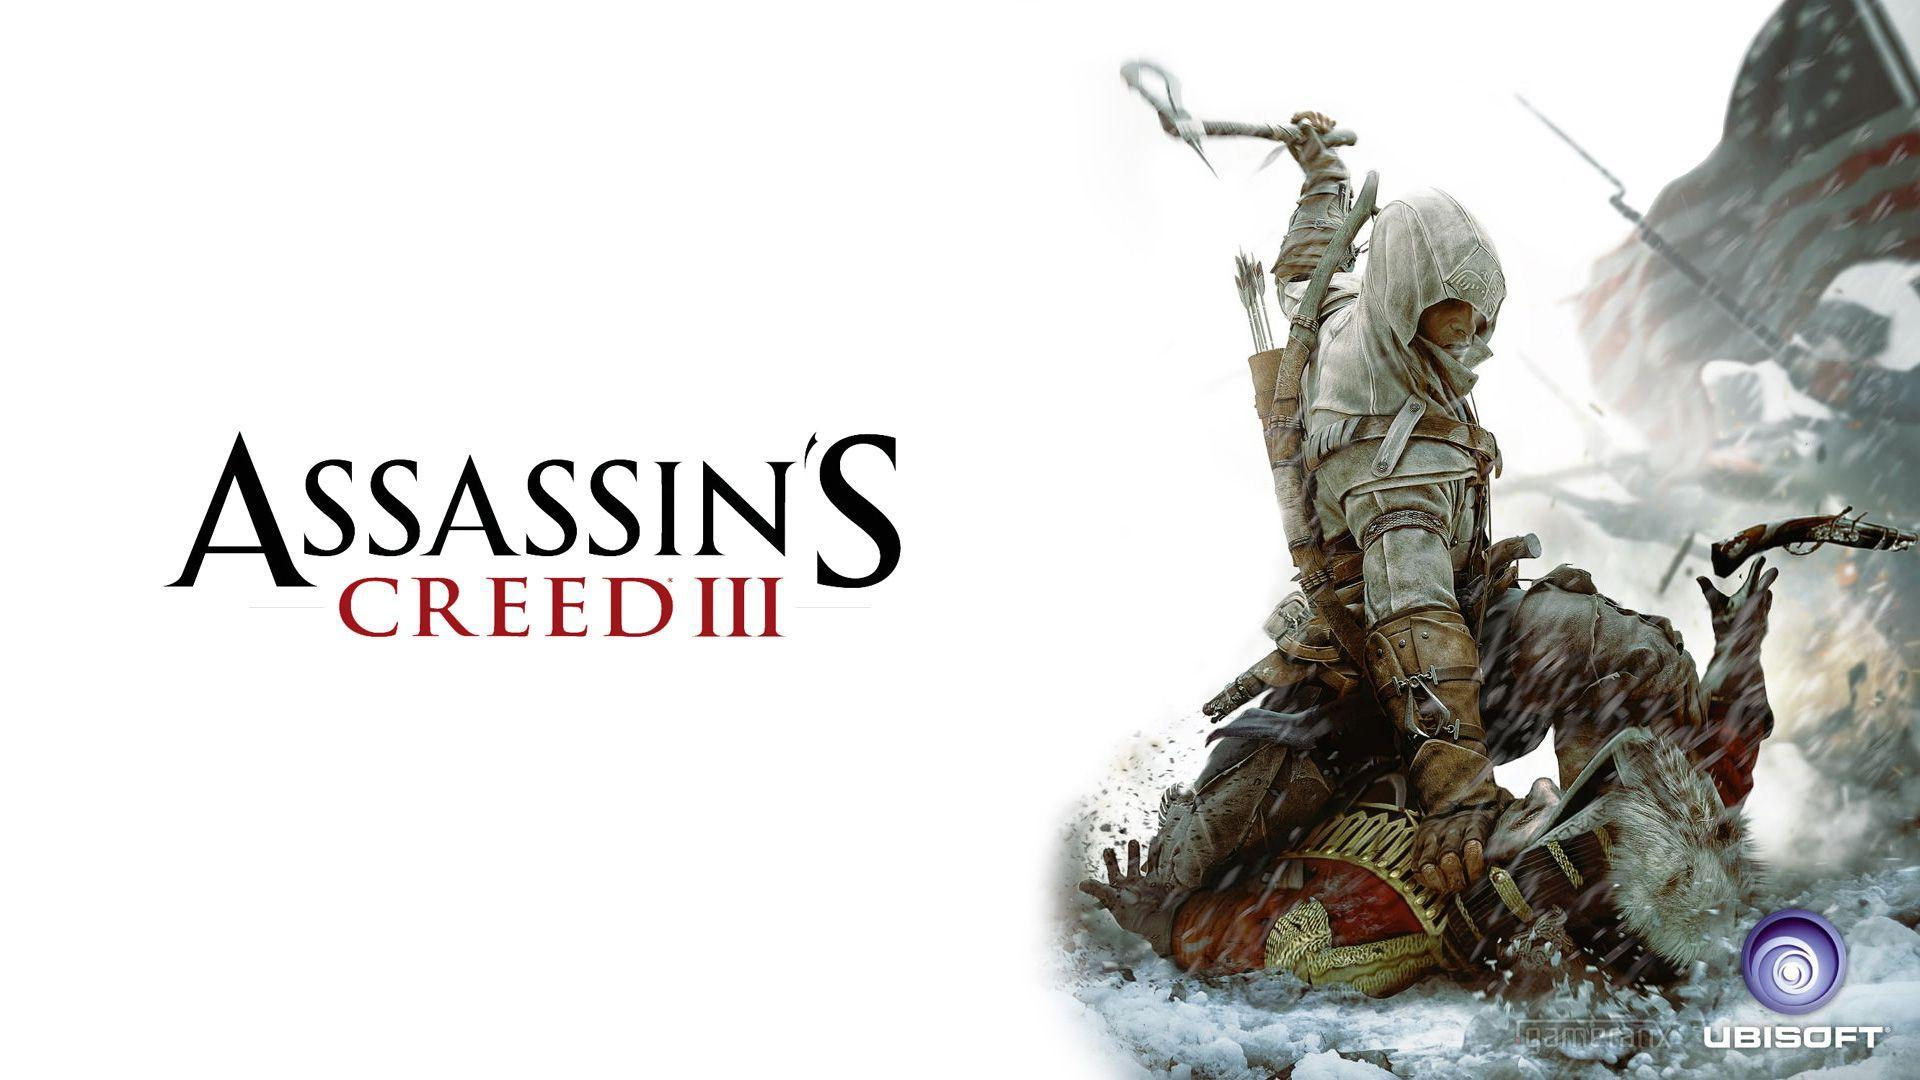 Download Wallpapers Hd Assassin&Creed 3